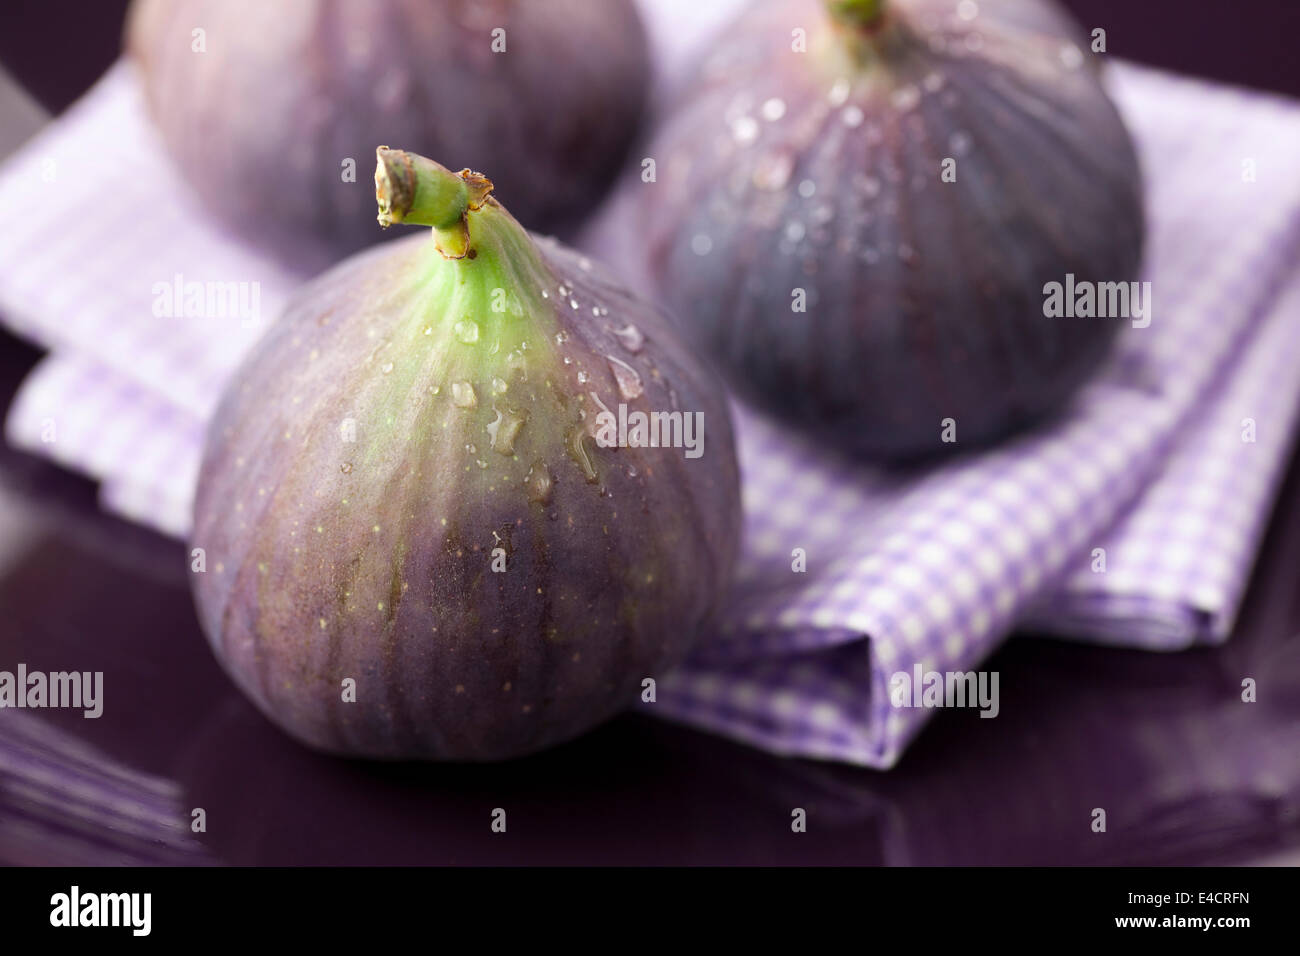 Figs in Purple Bowl - Stock Image